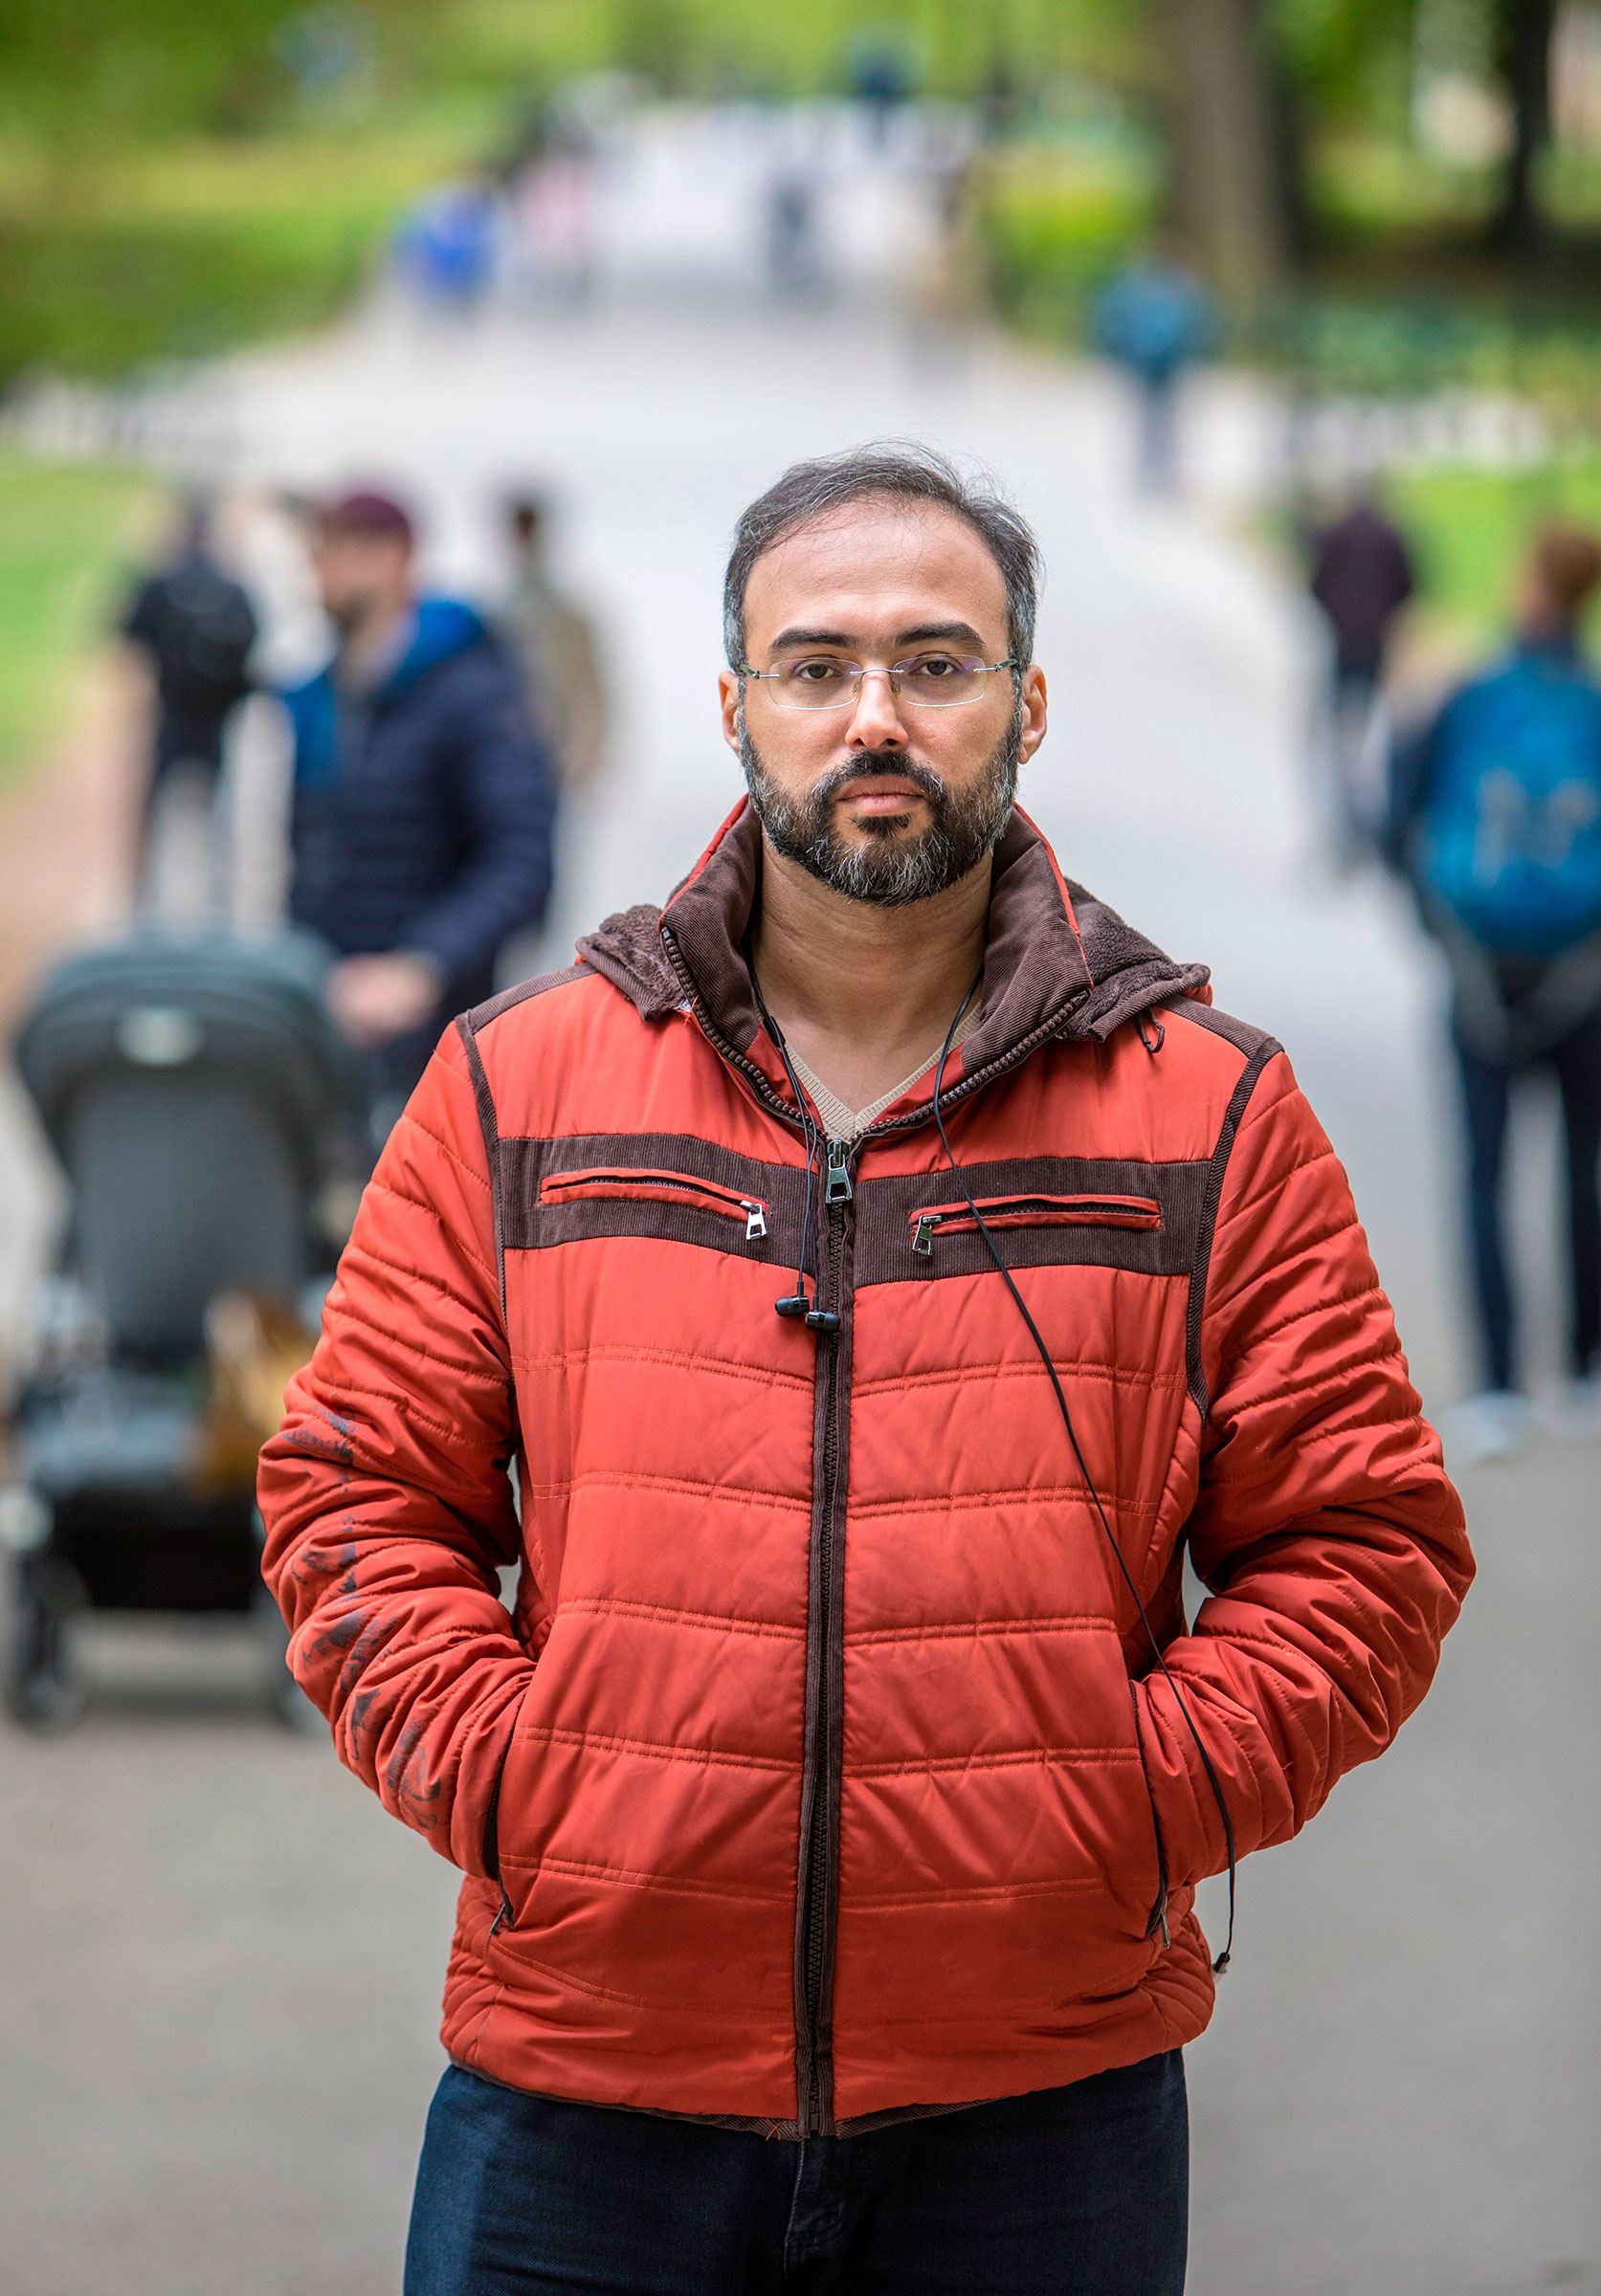 Iyad Baghdadi From asylum in Norway, the Arab sping activist presses on with projects to undo autocrats' malign influence in both social and traditional media